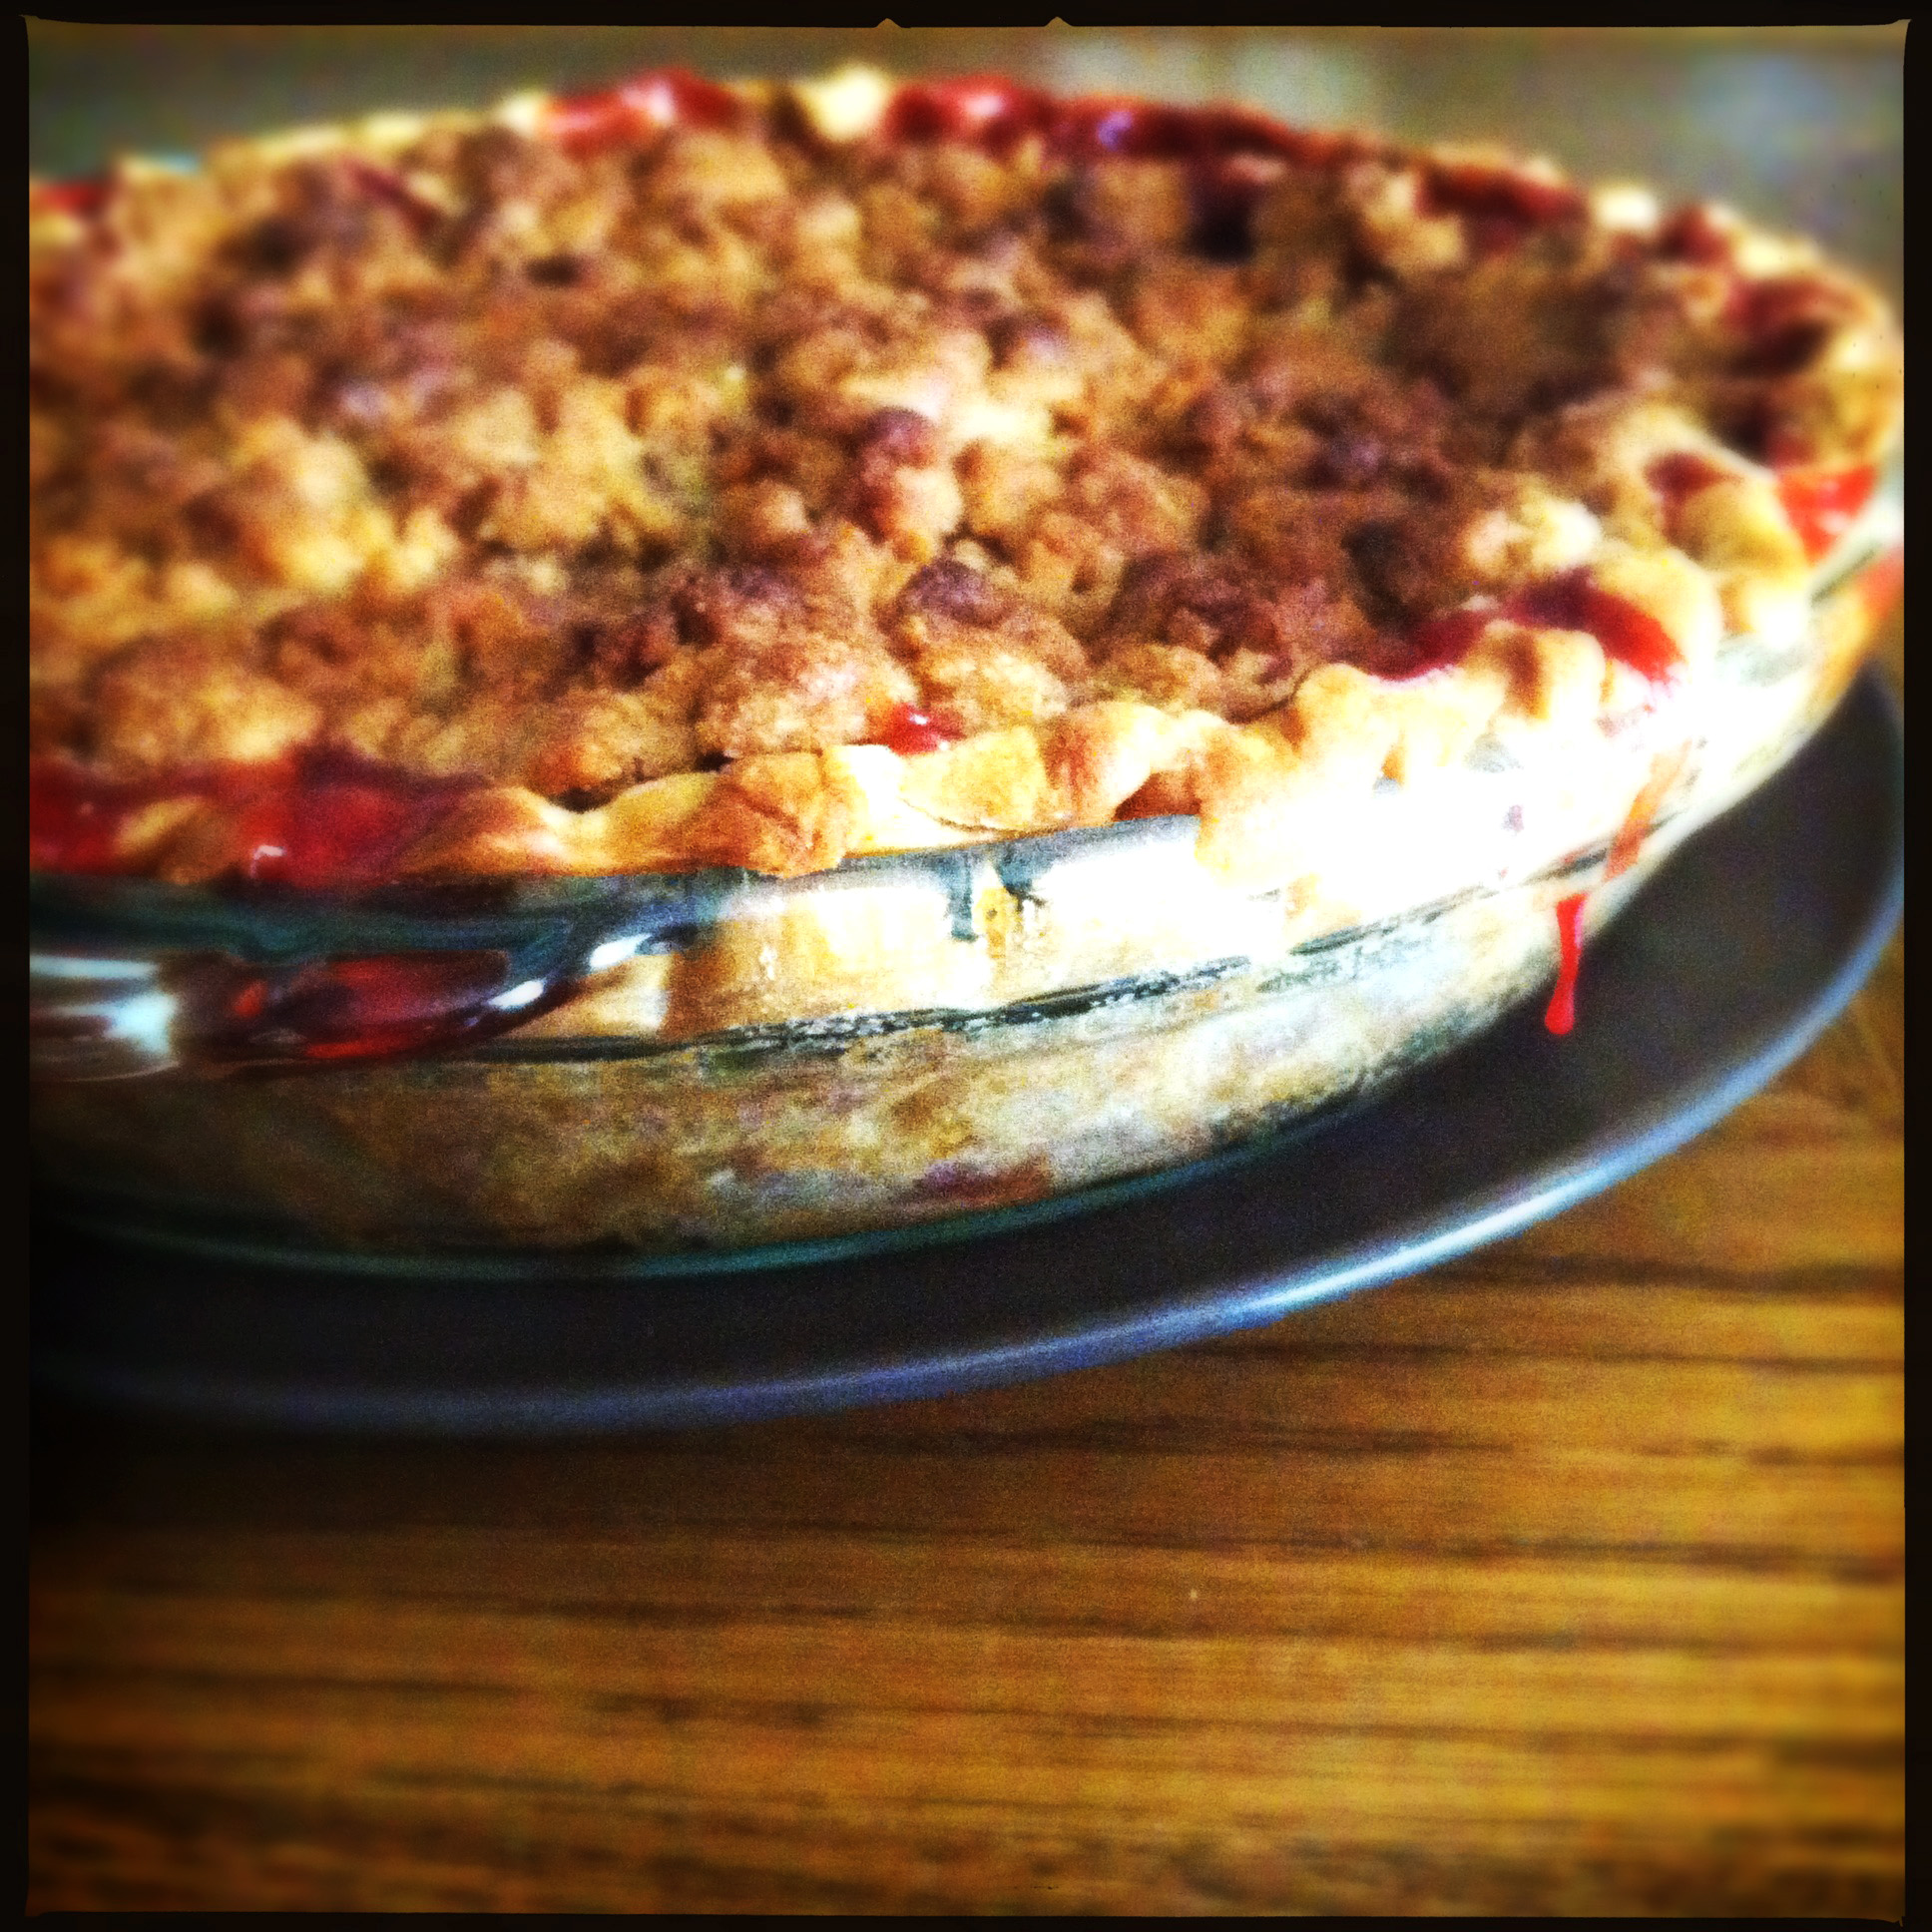 an homage to my momage (strawberry rhubarb pie)